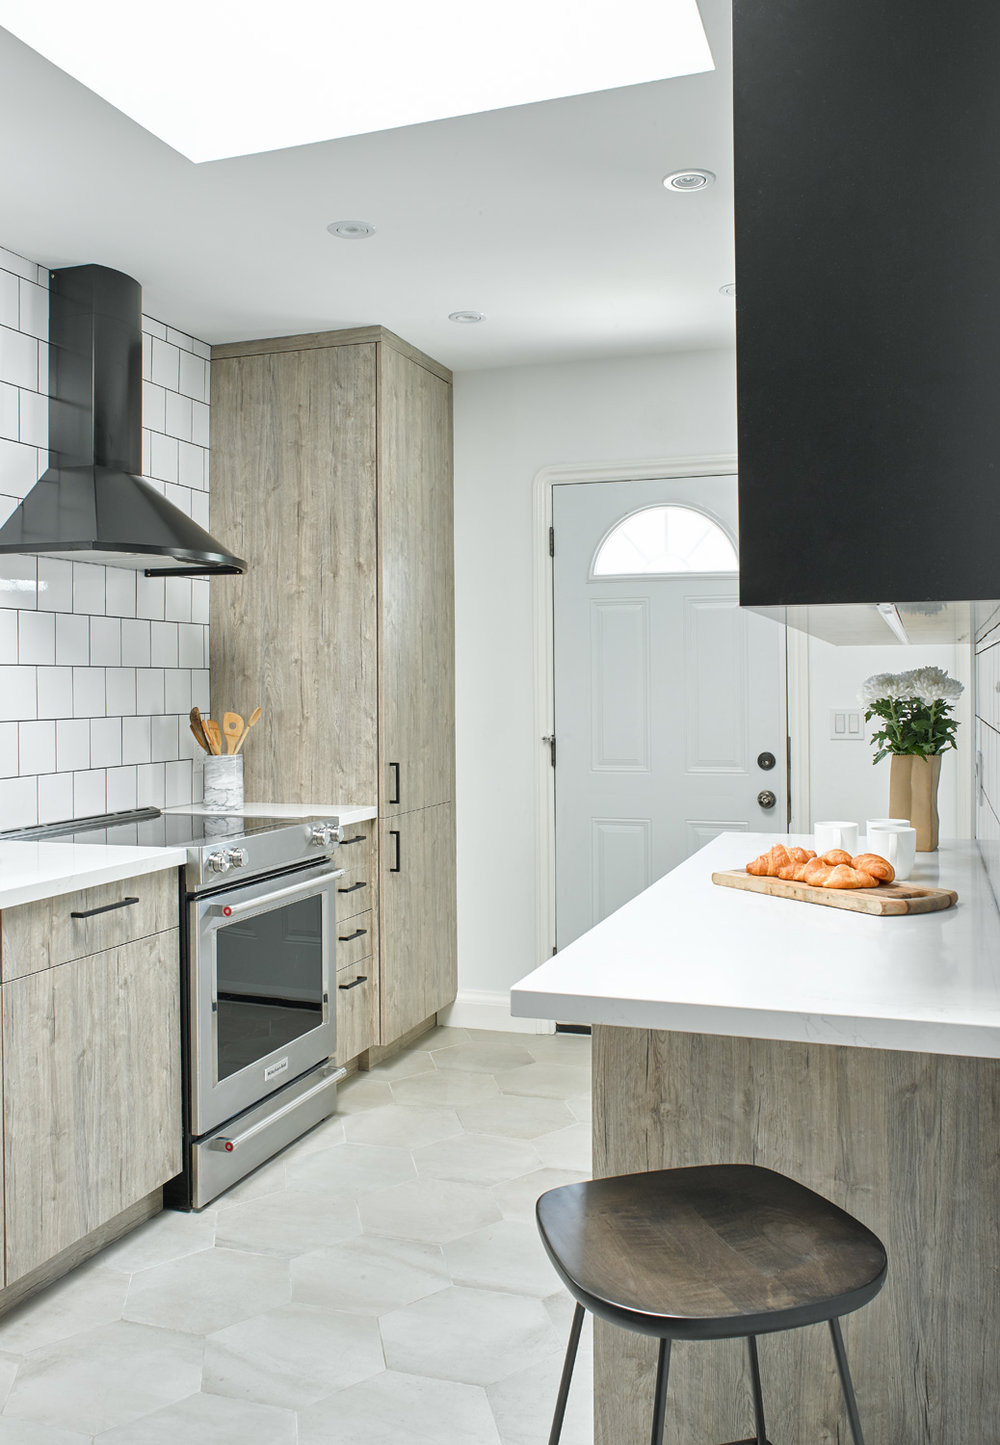 Affordable Laminate Kitchen by Linnea Lions